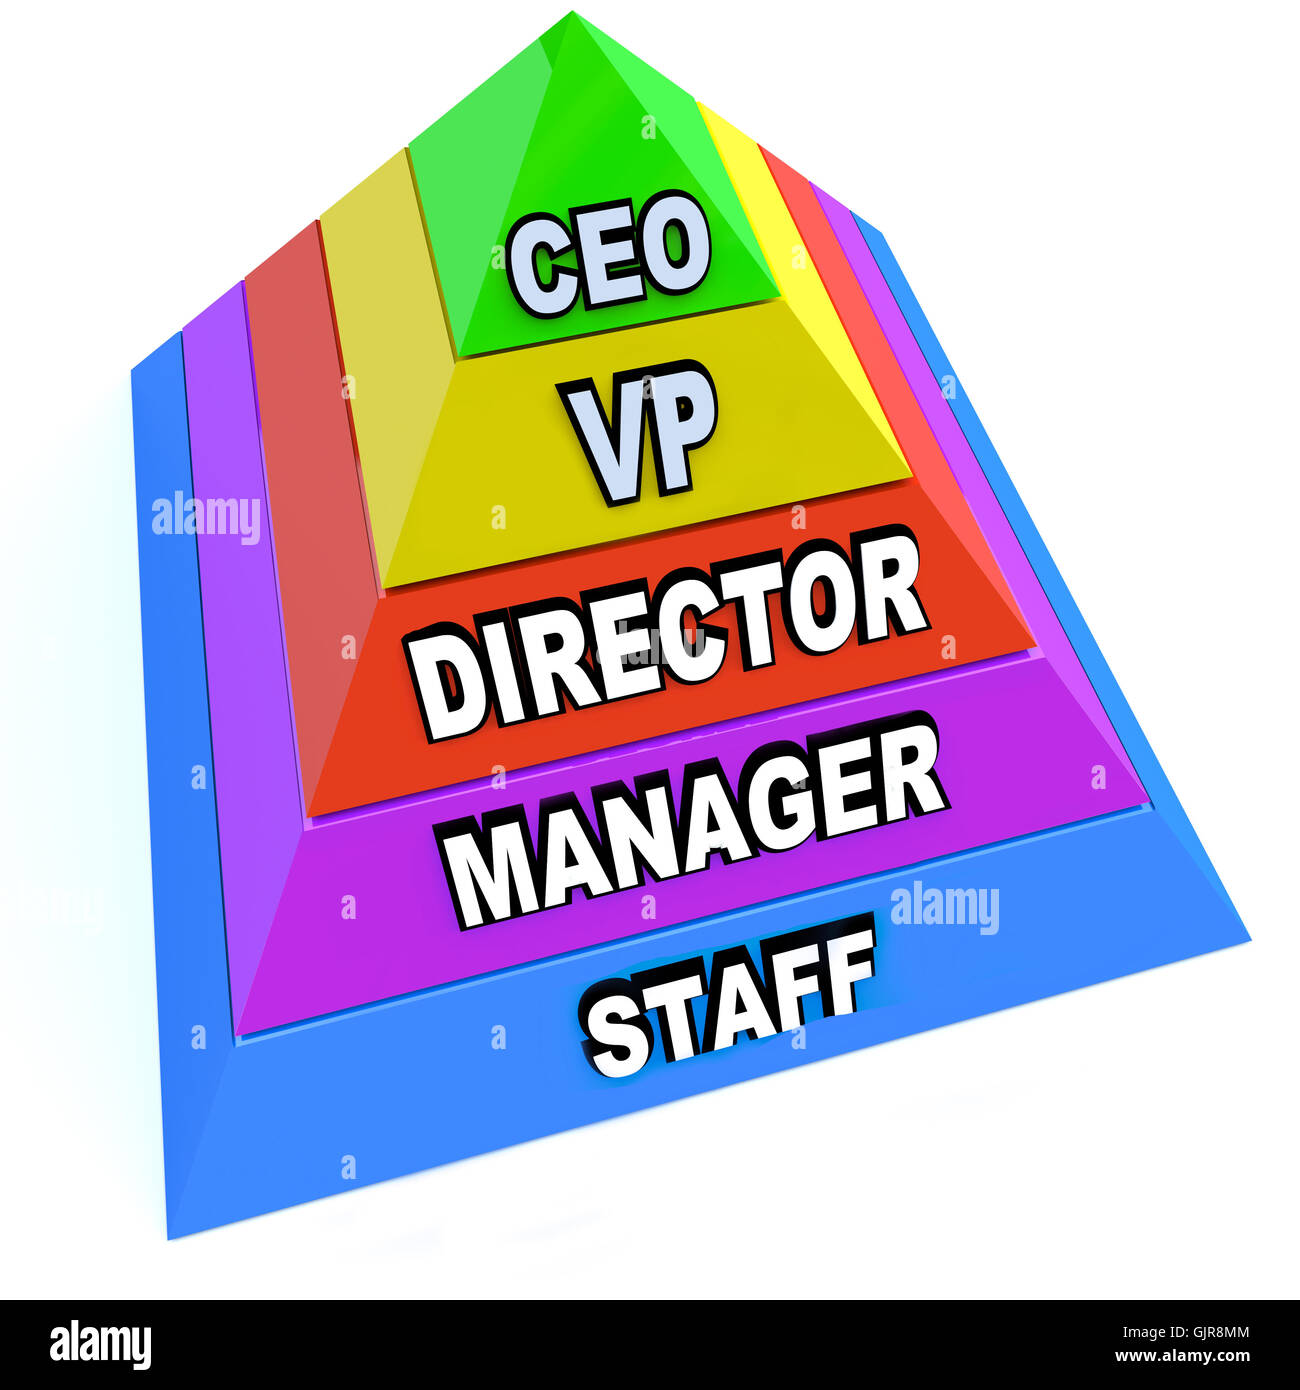 Pyramid of Chain of Command Levels in Organization Stock Photo